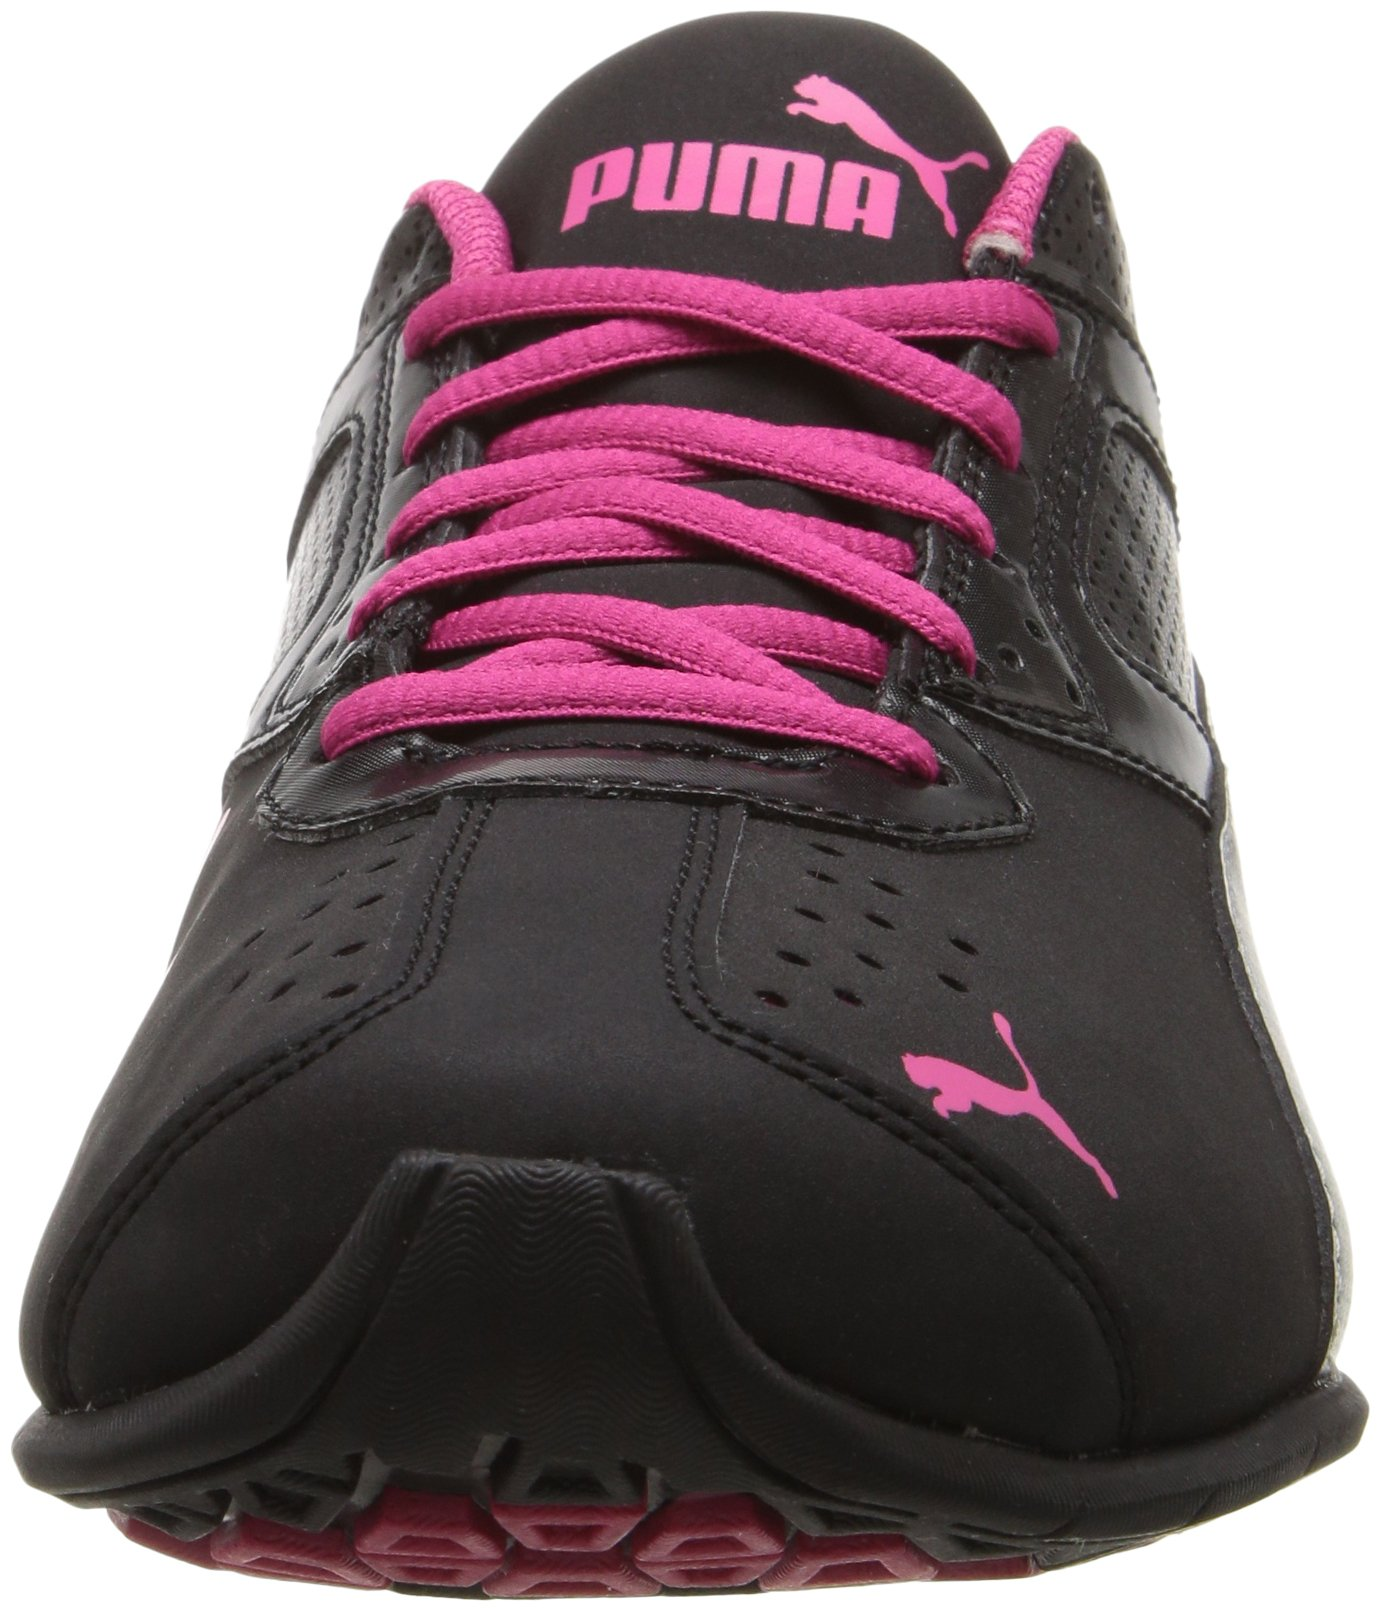 PUMA Women's Tazon 6 WN's fm Cross-Trainer Shoe Black Silver/Beetroot Purple, 7 M US by PUMA (Image #4)